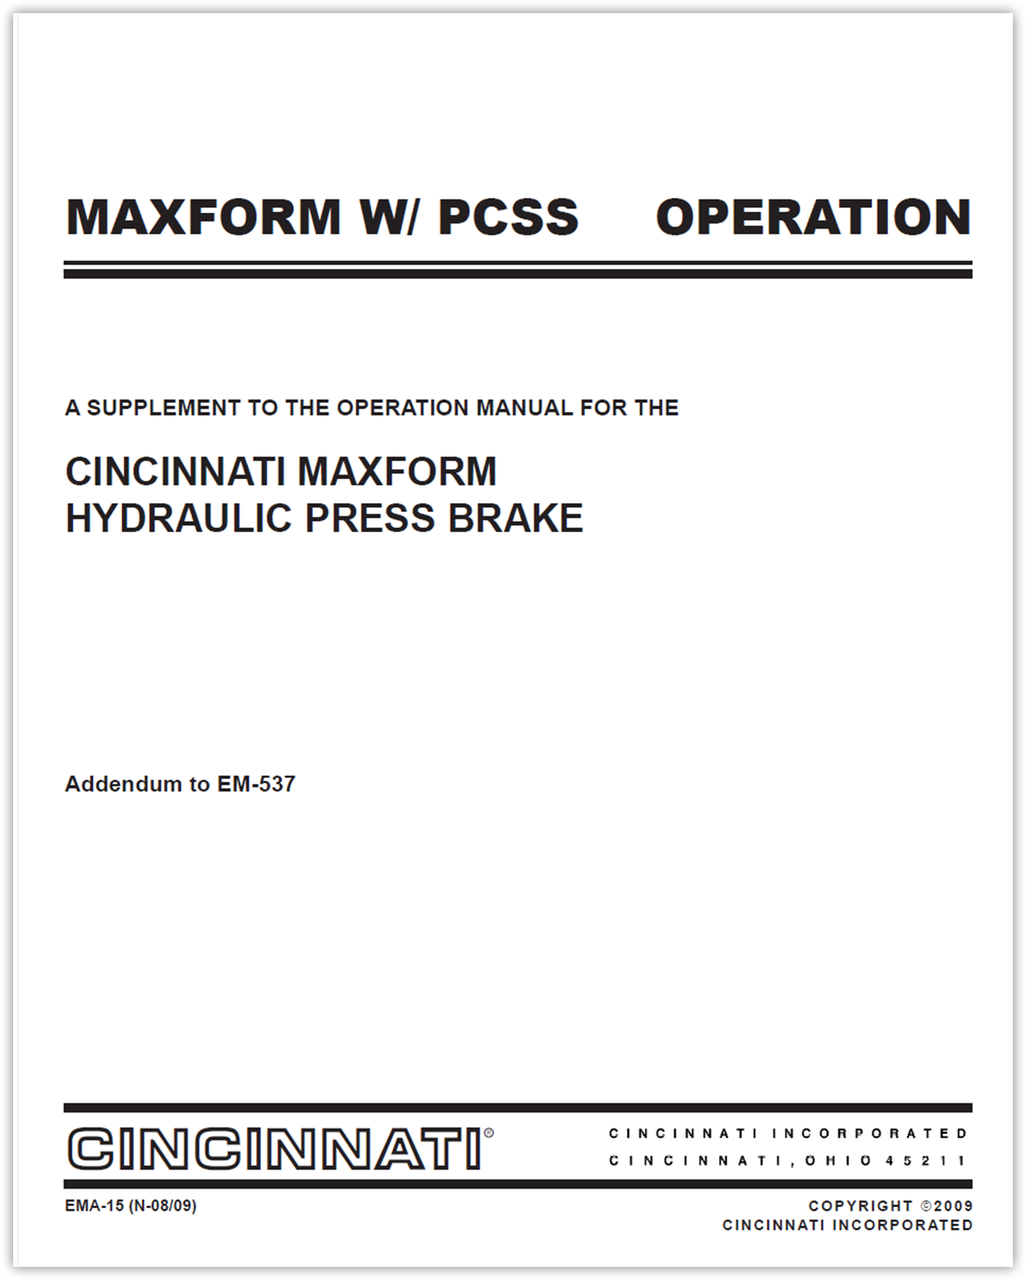 EMA-15 (N-08-09) PCSS Supplement to MAXFORM Operation Manual